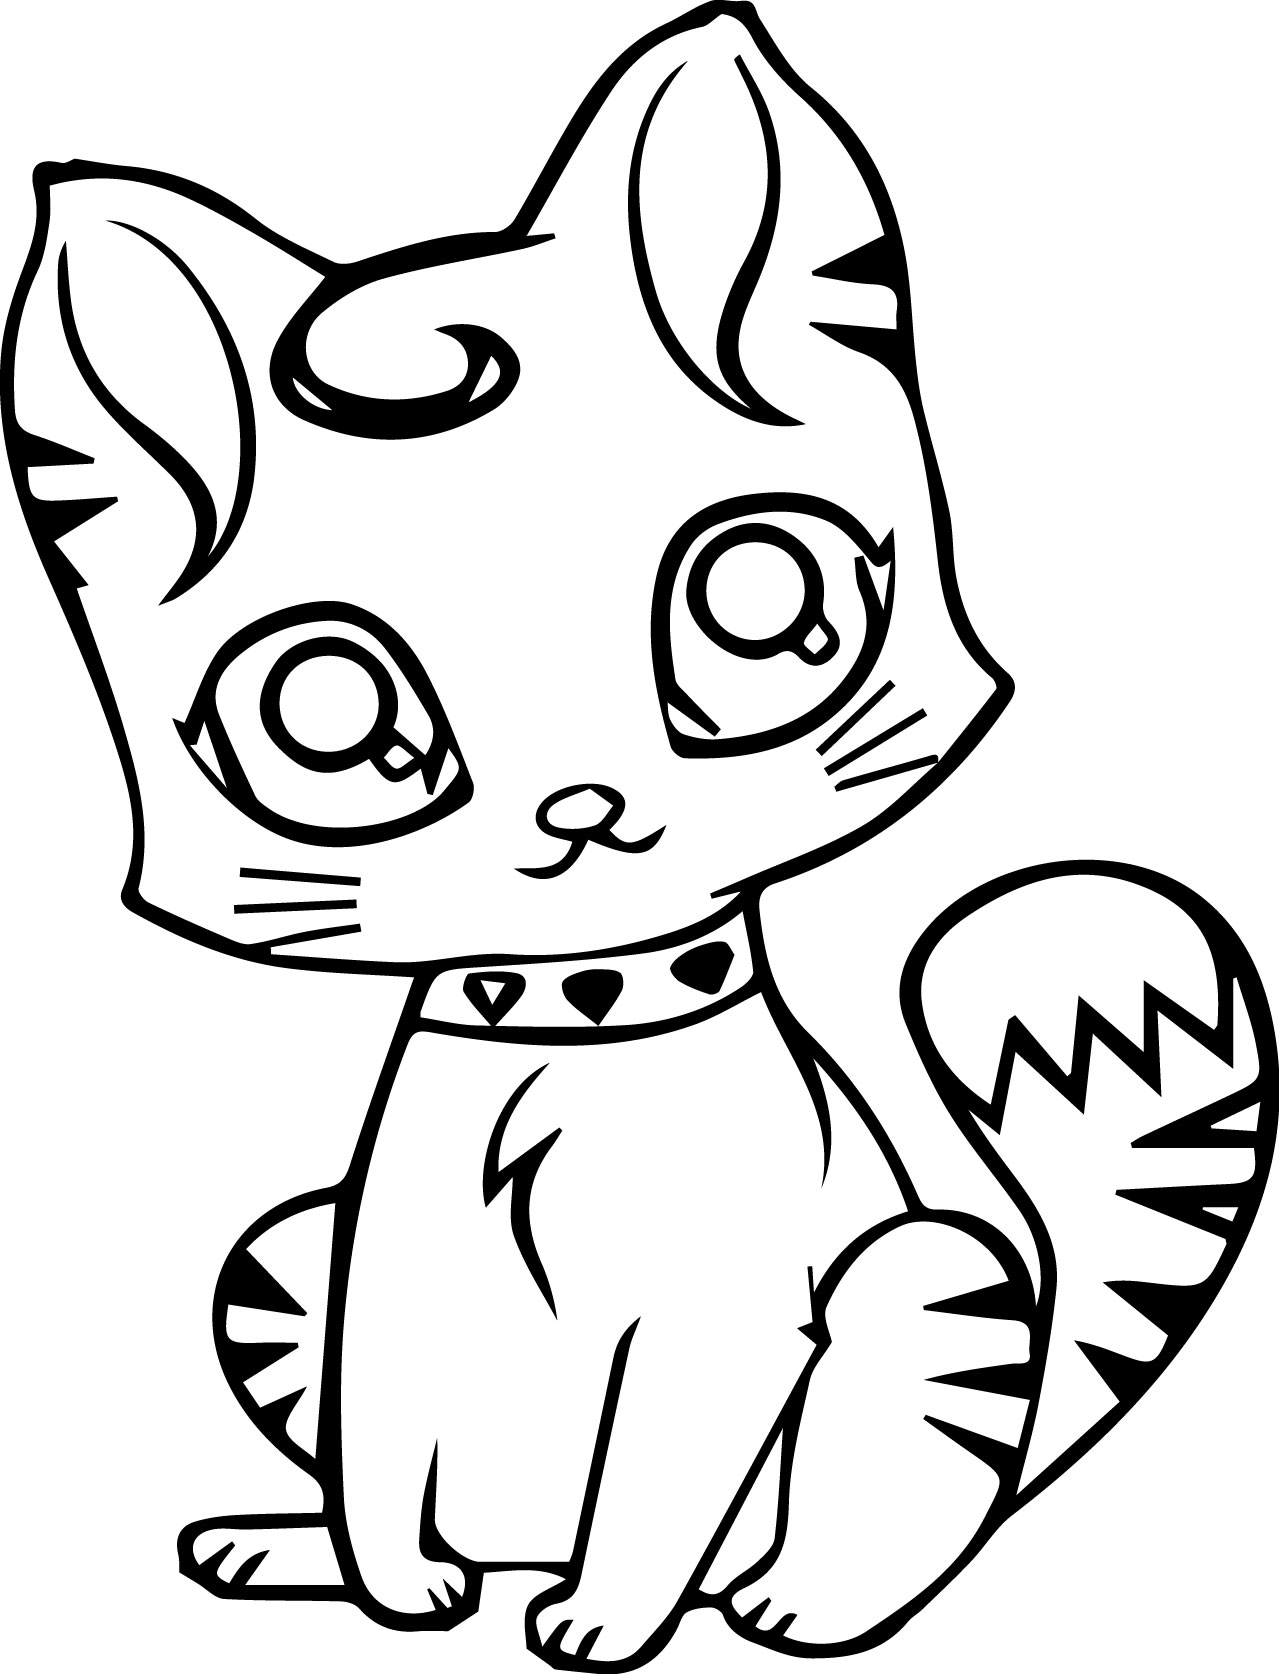 kitten color page free printable kitten coloring pages for kids best color kitten page